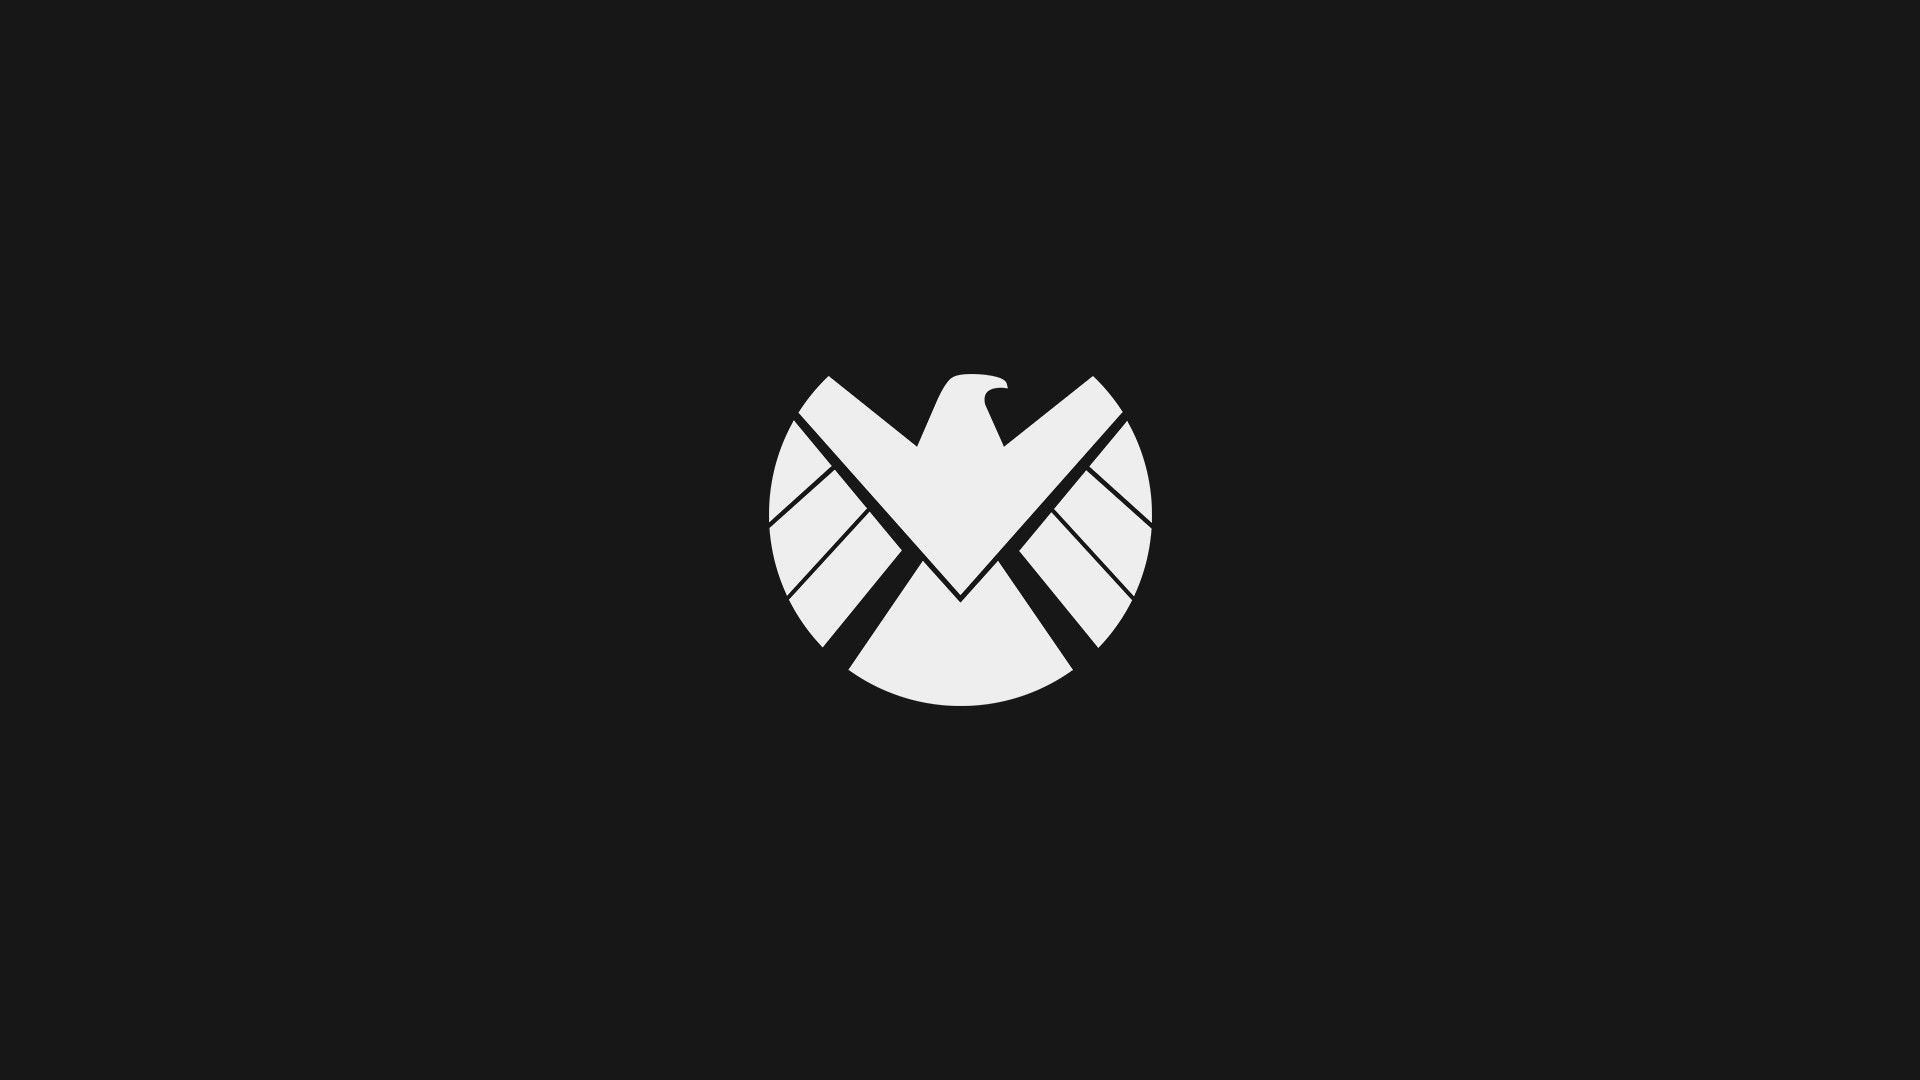 Minimalist Marvel Wallpaper 77 Images Marvel Wallpaper